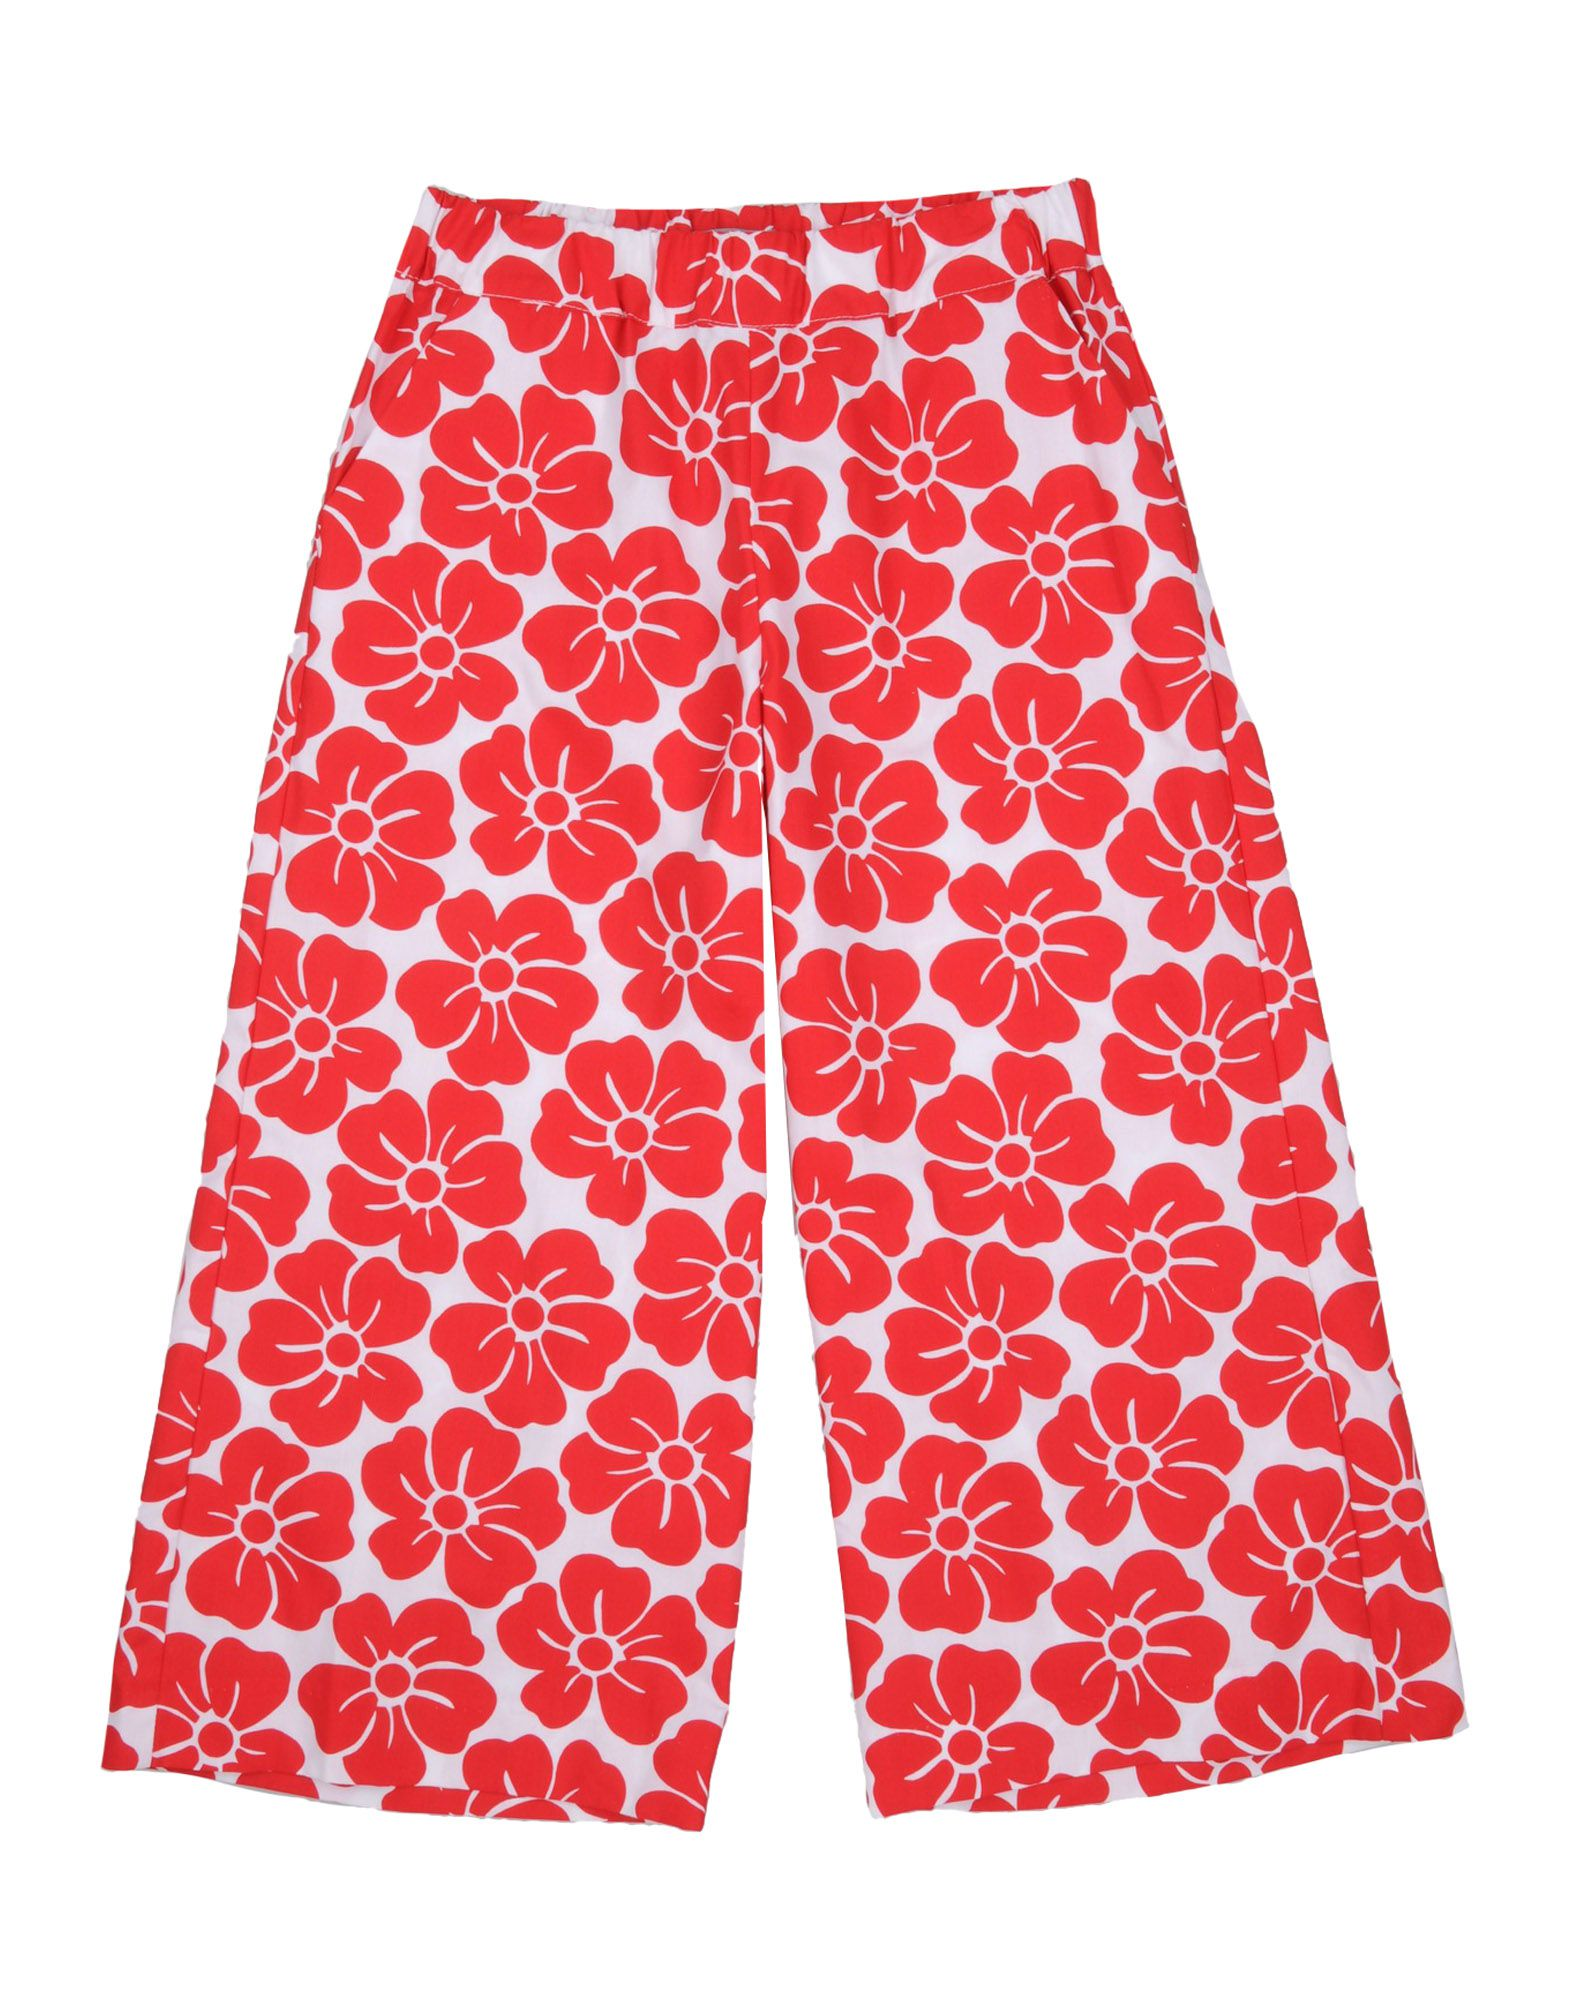 Capsule By Arabeth Kids' Casual Pants In Red